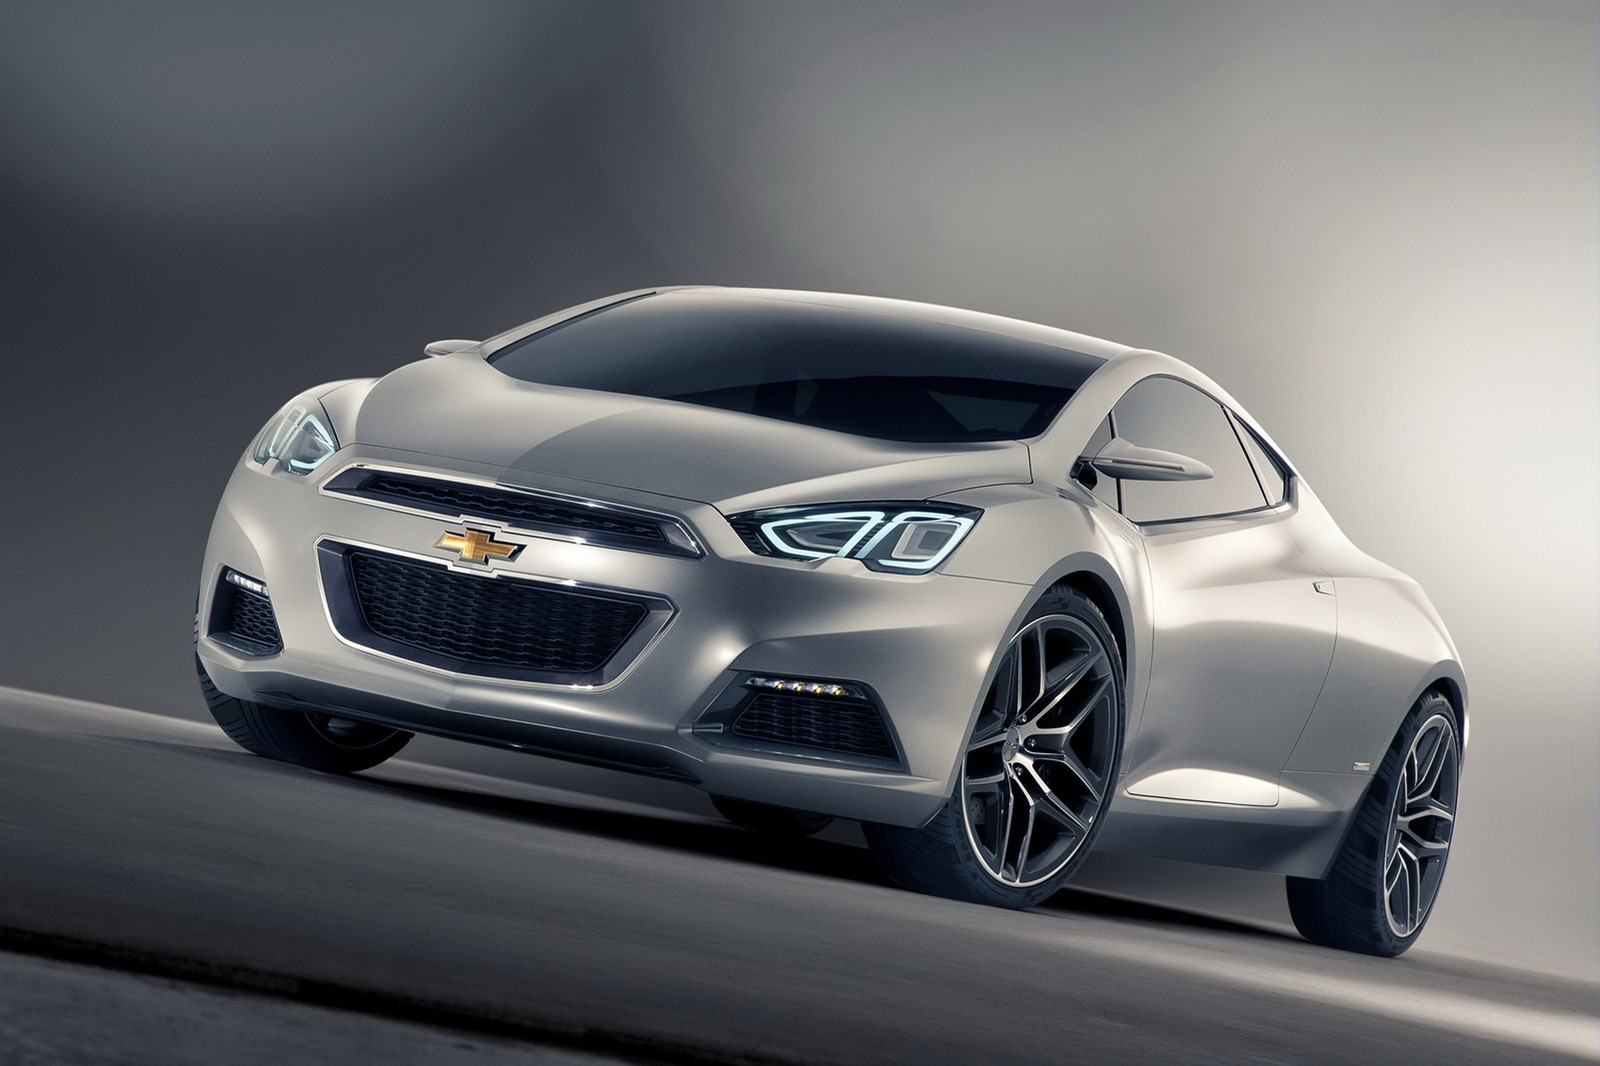 Chevrolet Tru 140S Concept Cruze 2015 Wallpaper For Android